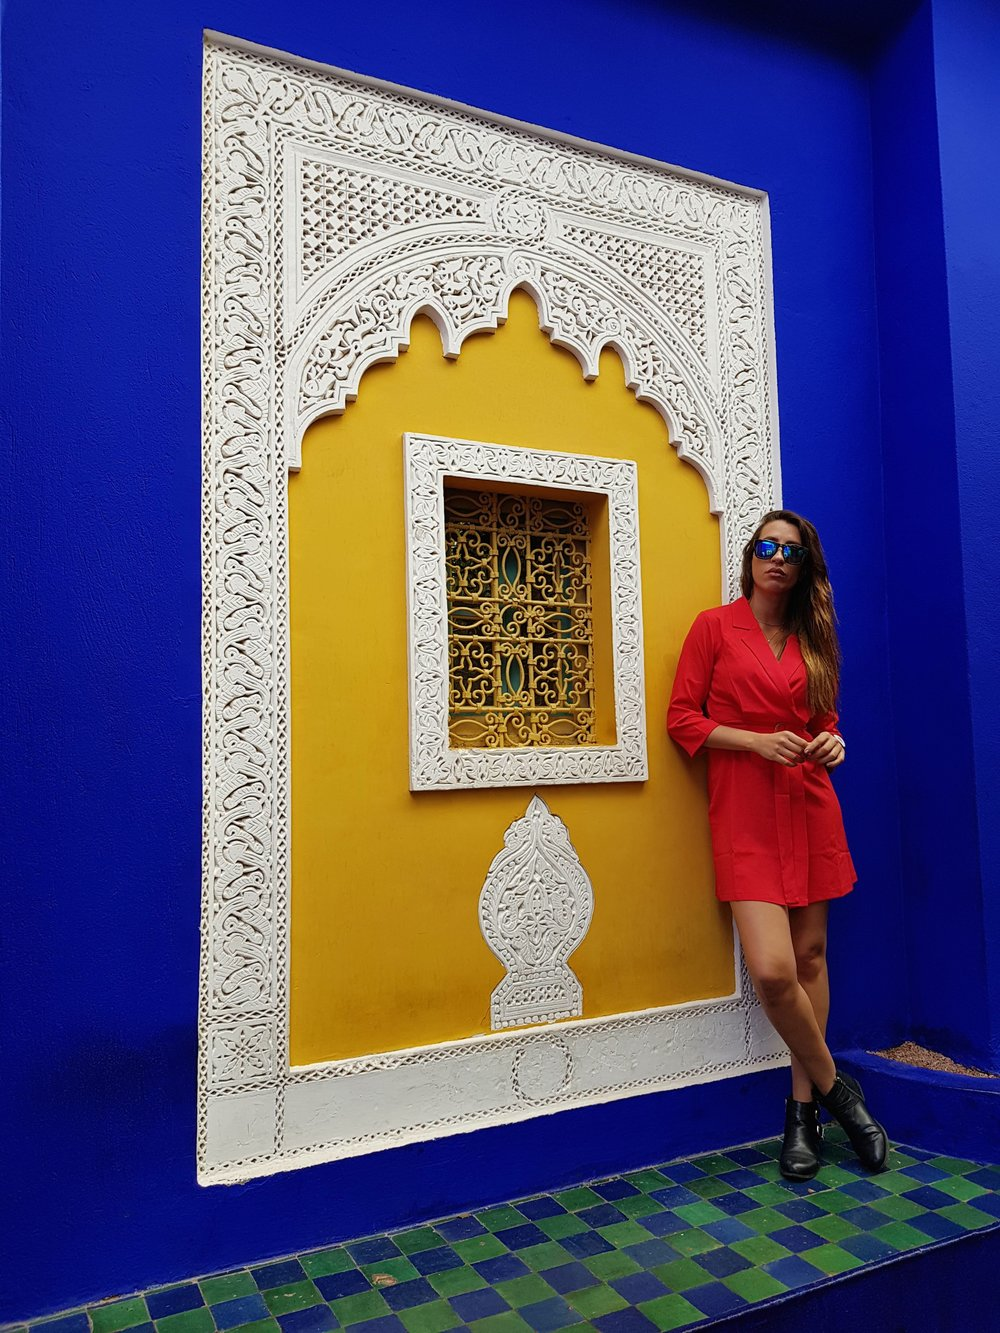 #3. Jardin Marjorelle & YSL - I love fashion so couldn't wait to go and visit the home and museum of the iconic Yves Saint Laurent. The Jardin Marjorelle was YSL's creation and home for many years where he designed many of his masterpieces. The garden is beautiful and so colourful with deep blues, yellows and reds. In fact Marjorelle Blue is the colour famous to Morocco which can be found all over the walls of the buildings. His museum is next door and well worth a visit to see his designs and get an understanding of the inspiration he took from Morocco's colours and cultureTop Tip: Get the ticket for the garden and the museum together - definitely worth it if you love fashion!